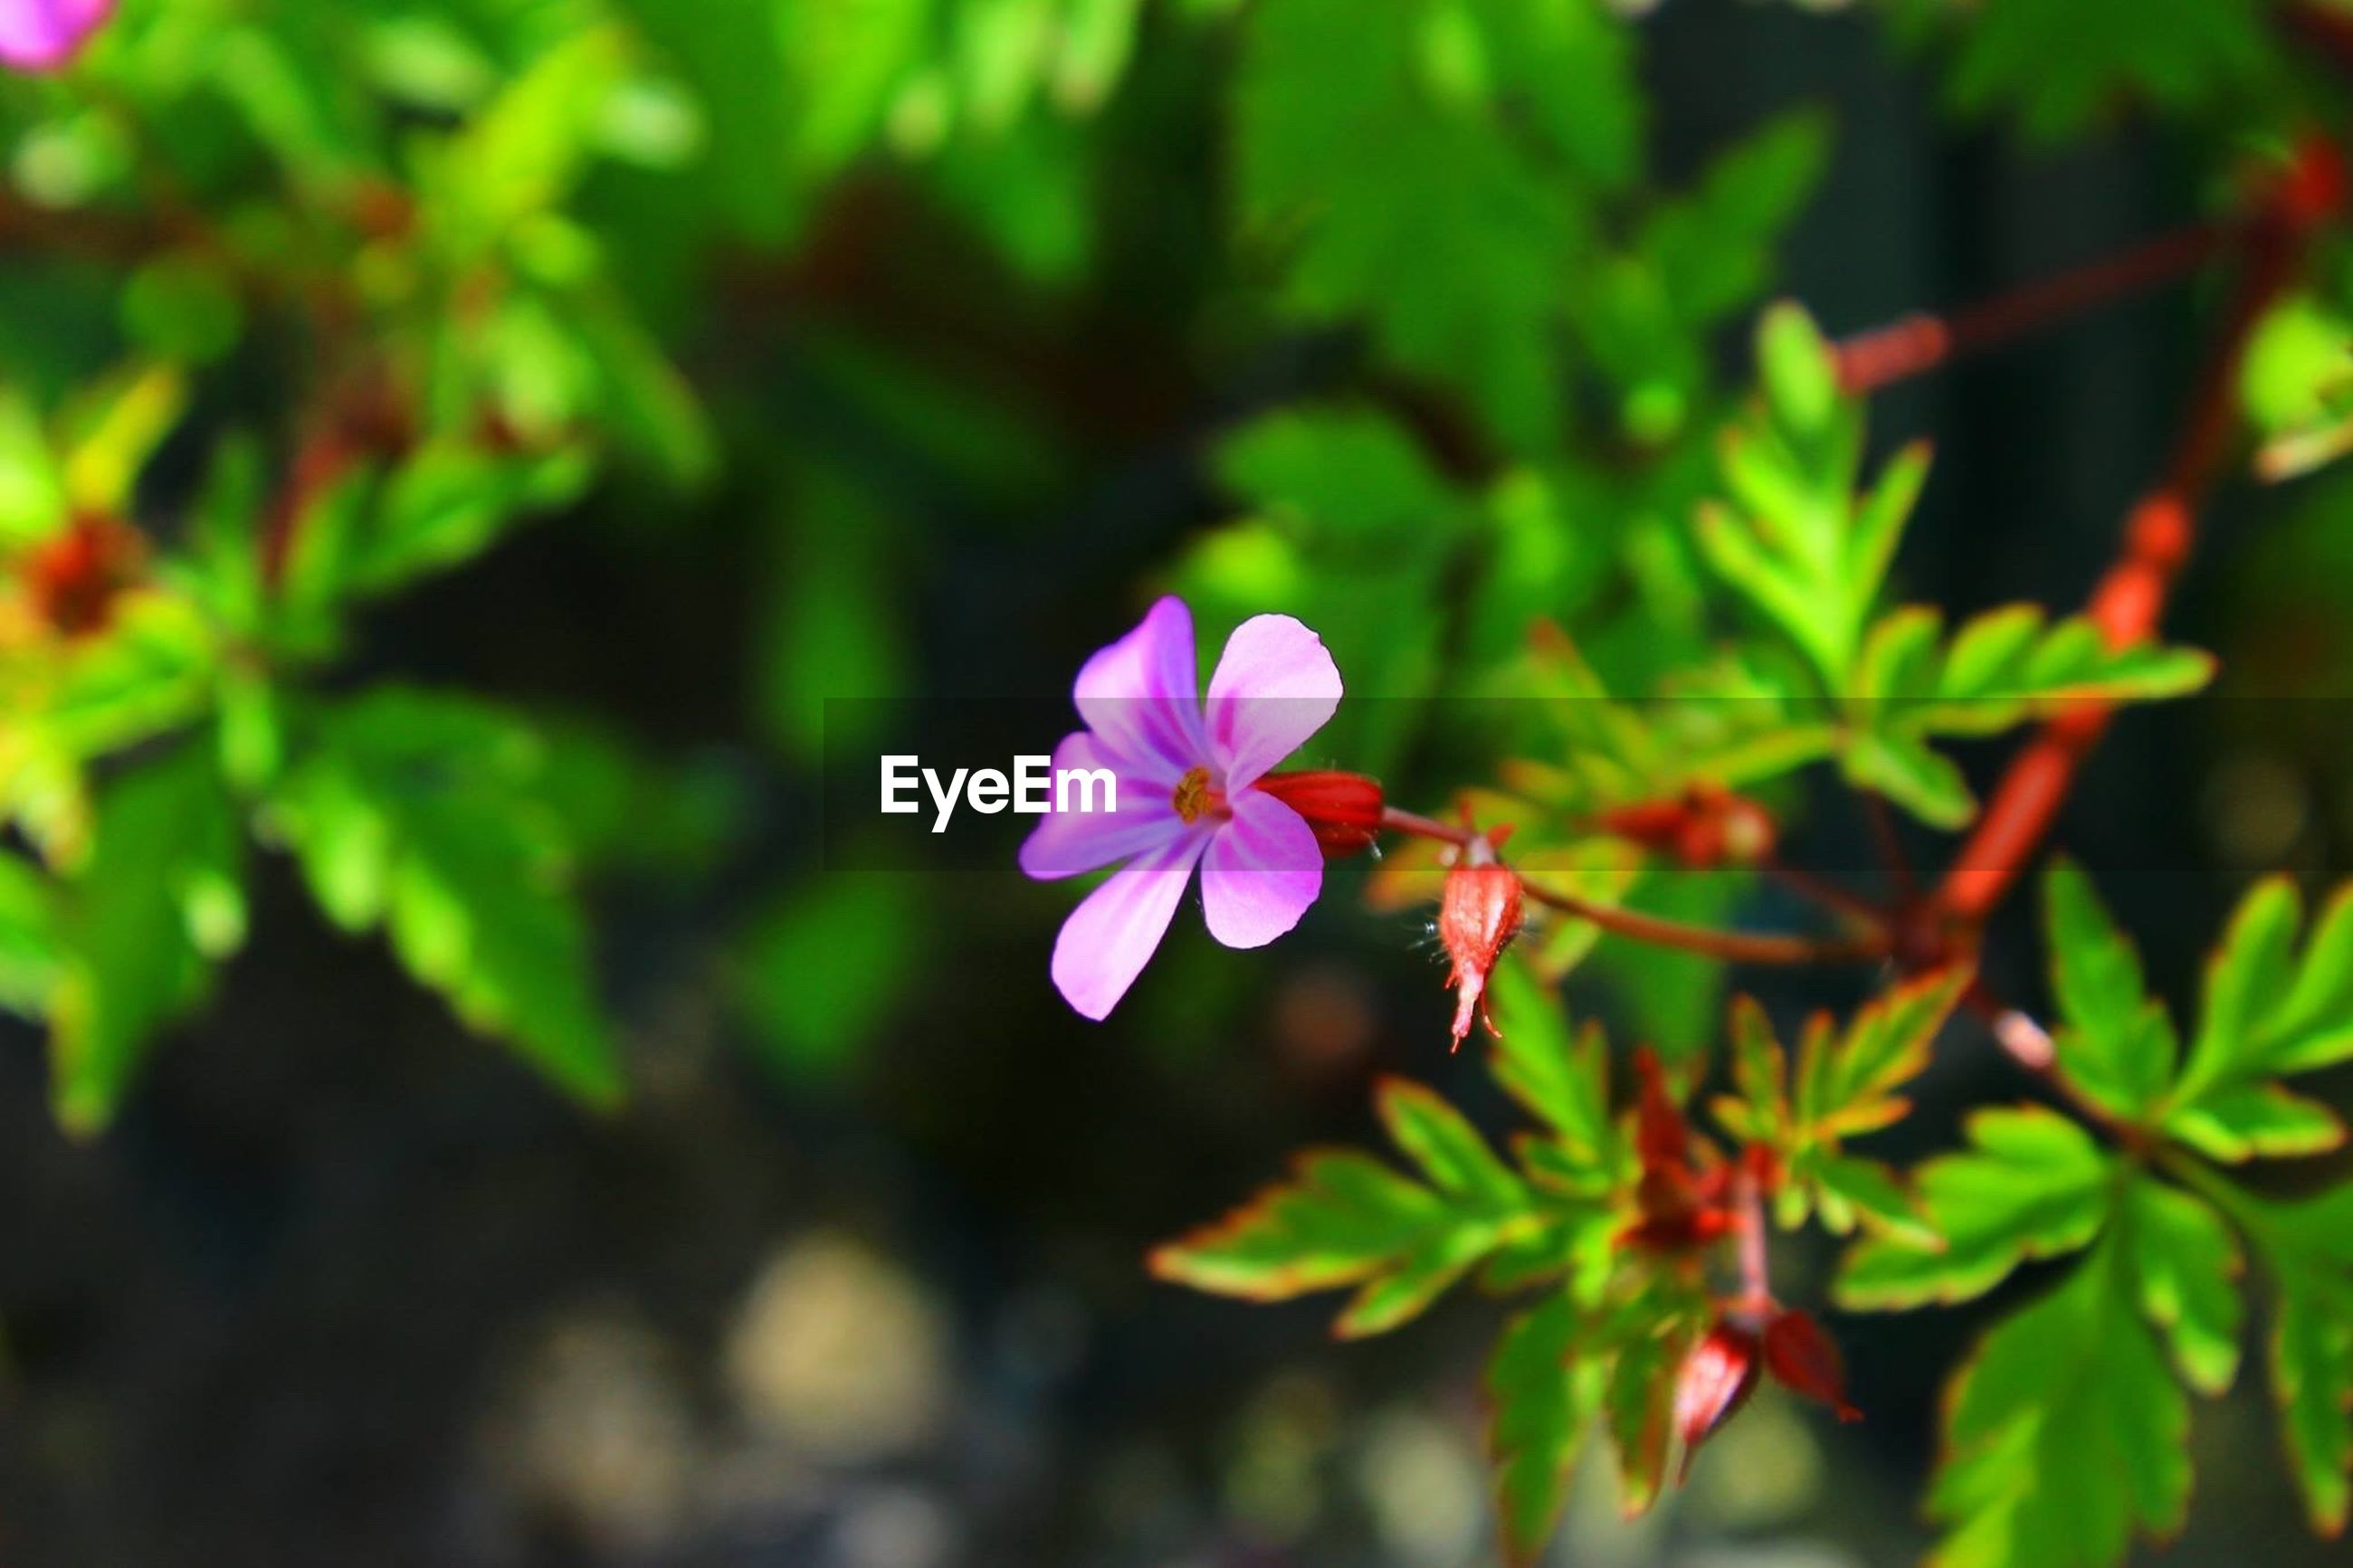 flower, petal, freshness, fragility, flower head, growth, beauty in nature, pink color, blooming, focus on foreground, nature, close-up, single flower, plant, purple, pollen, leaf, in bloom, blossom, stamen